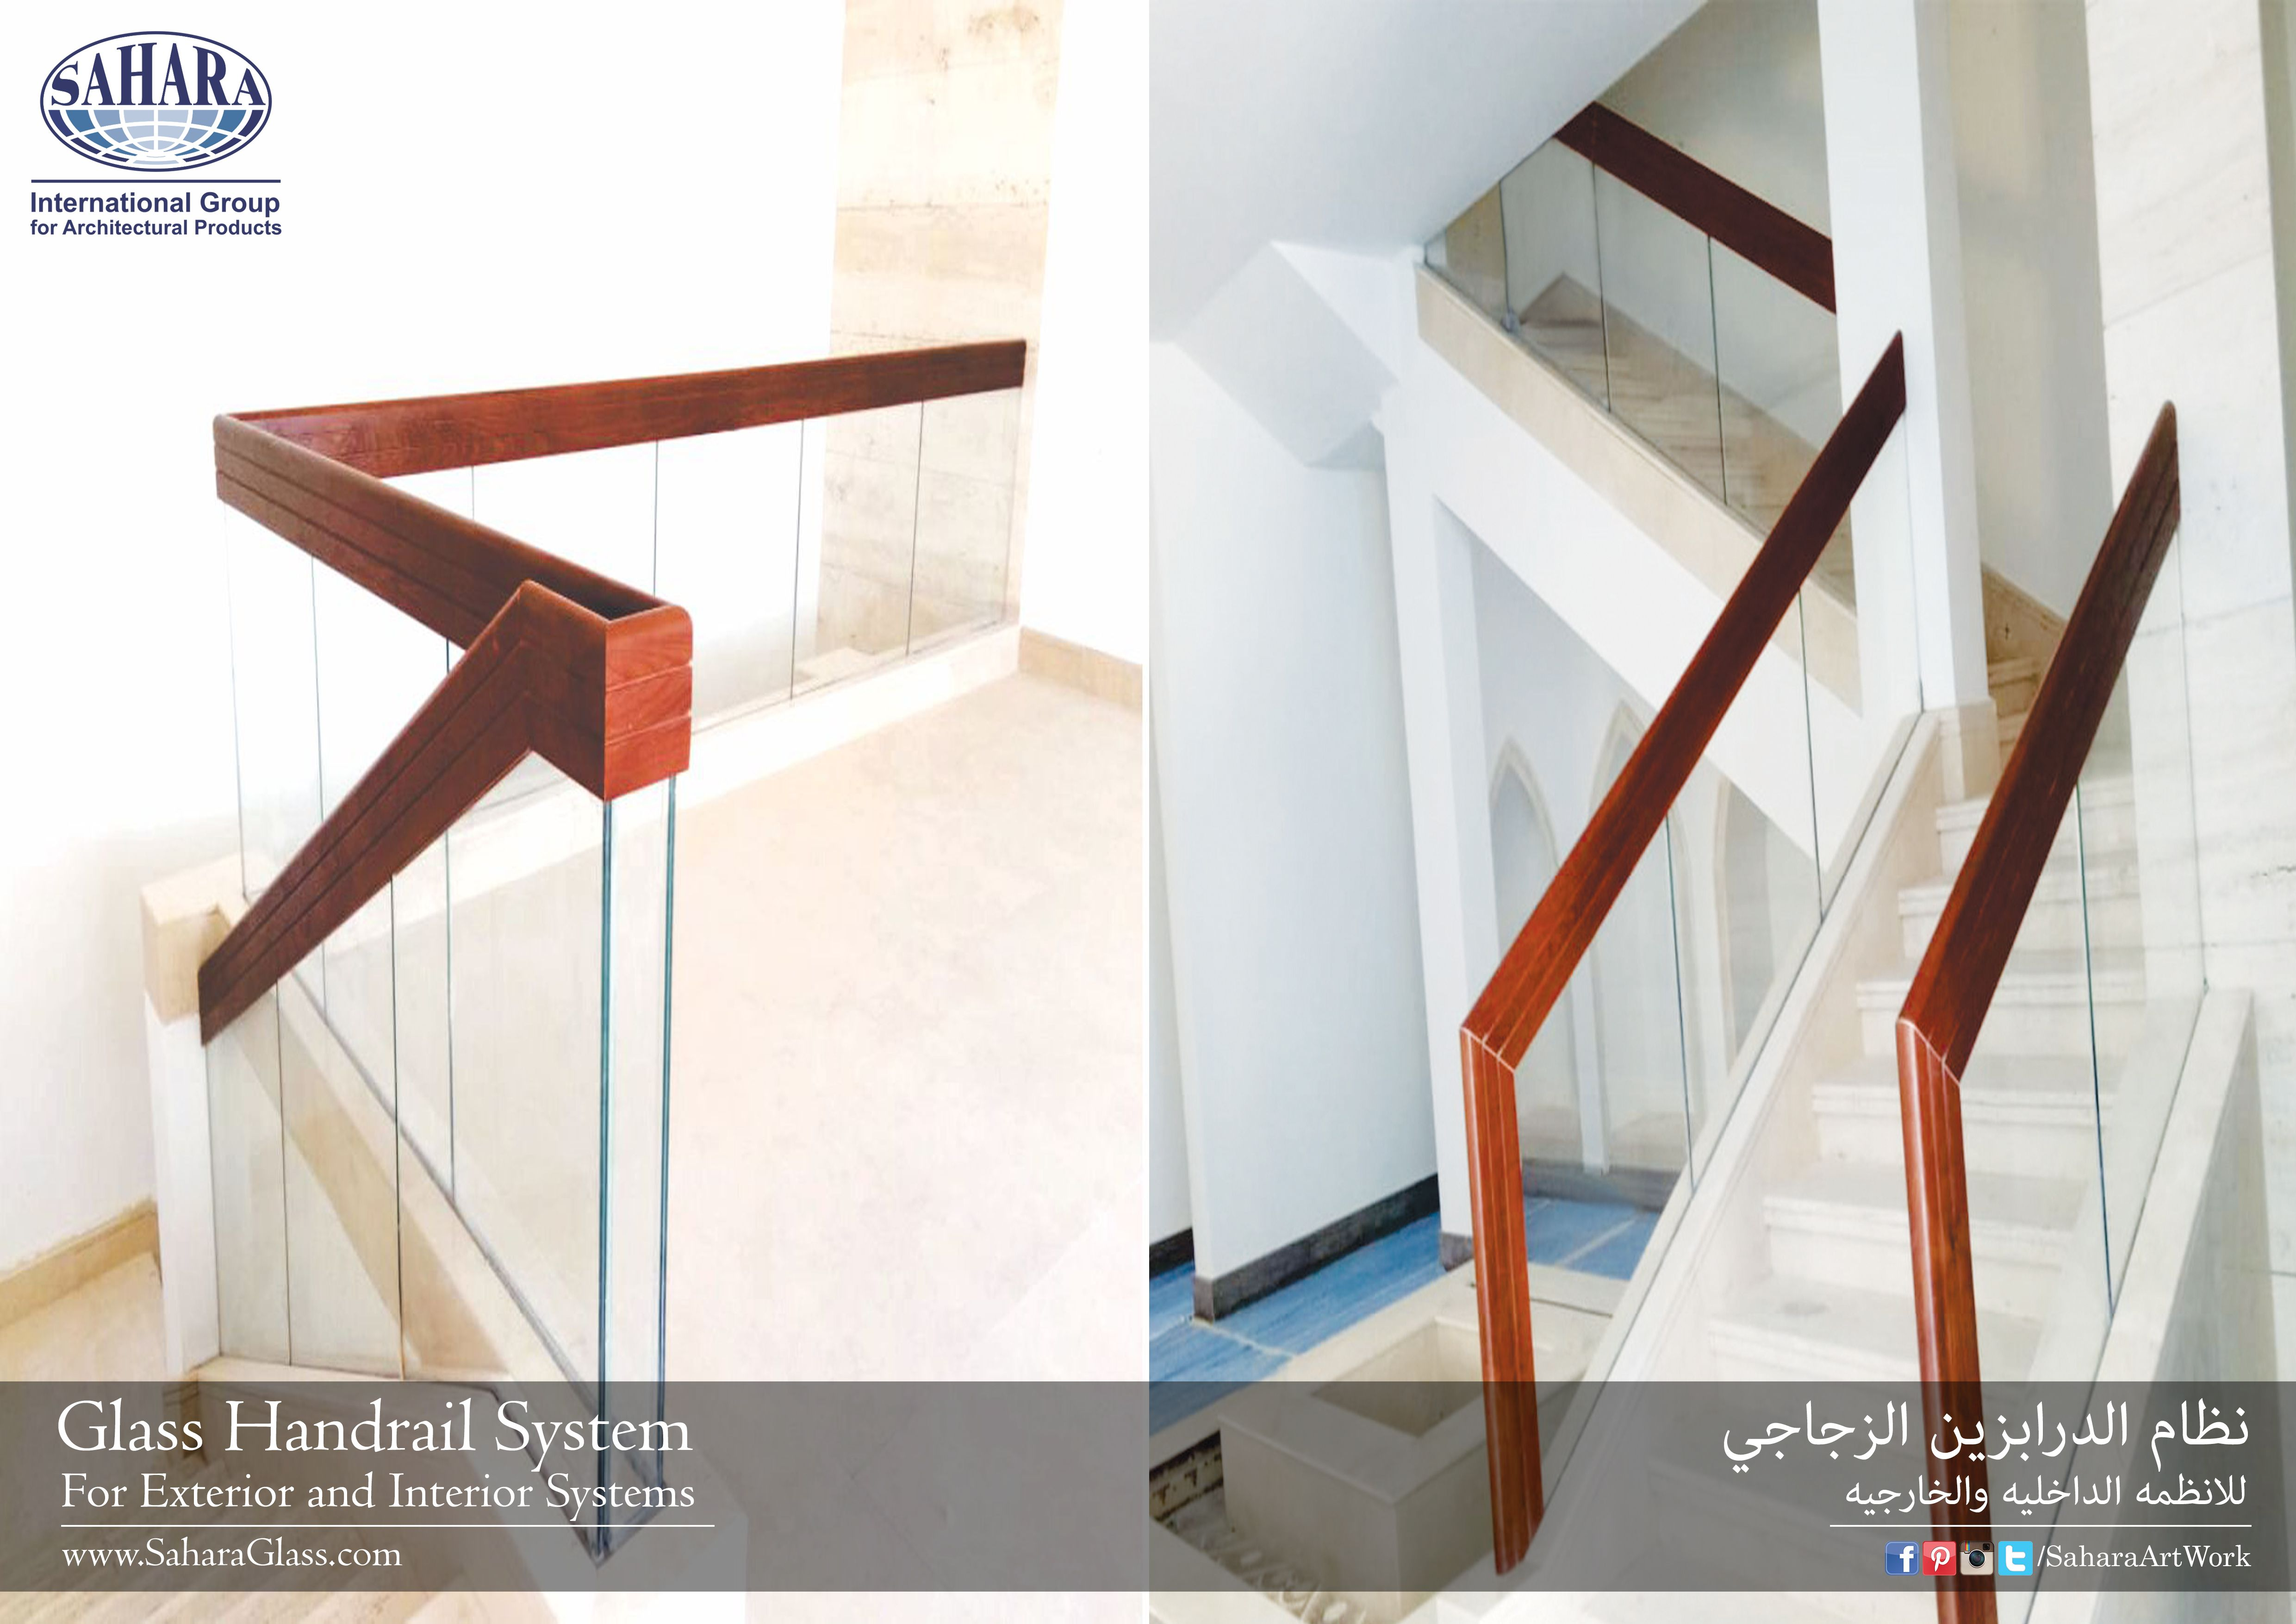 A Very Elegant And Beautiful Glass Handrail Glass Handrail Handrail Mahogany Wood